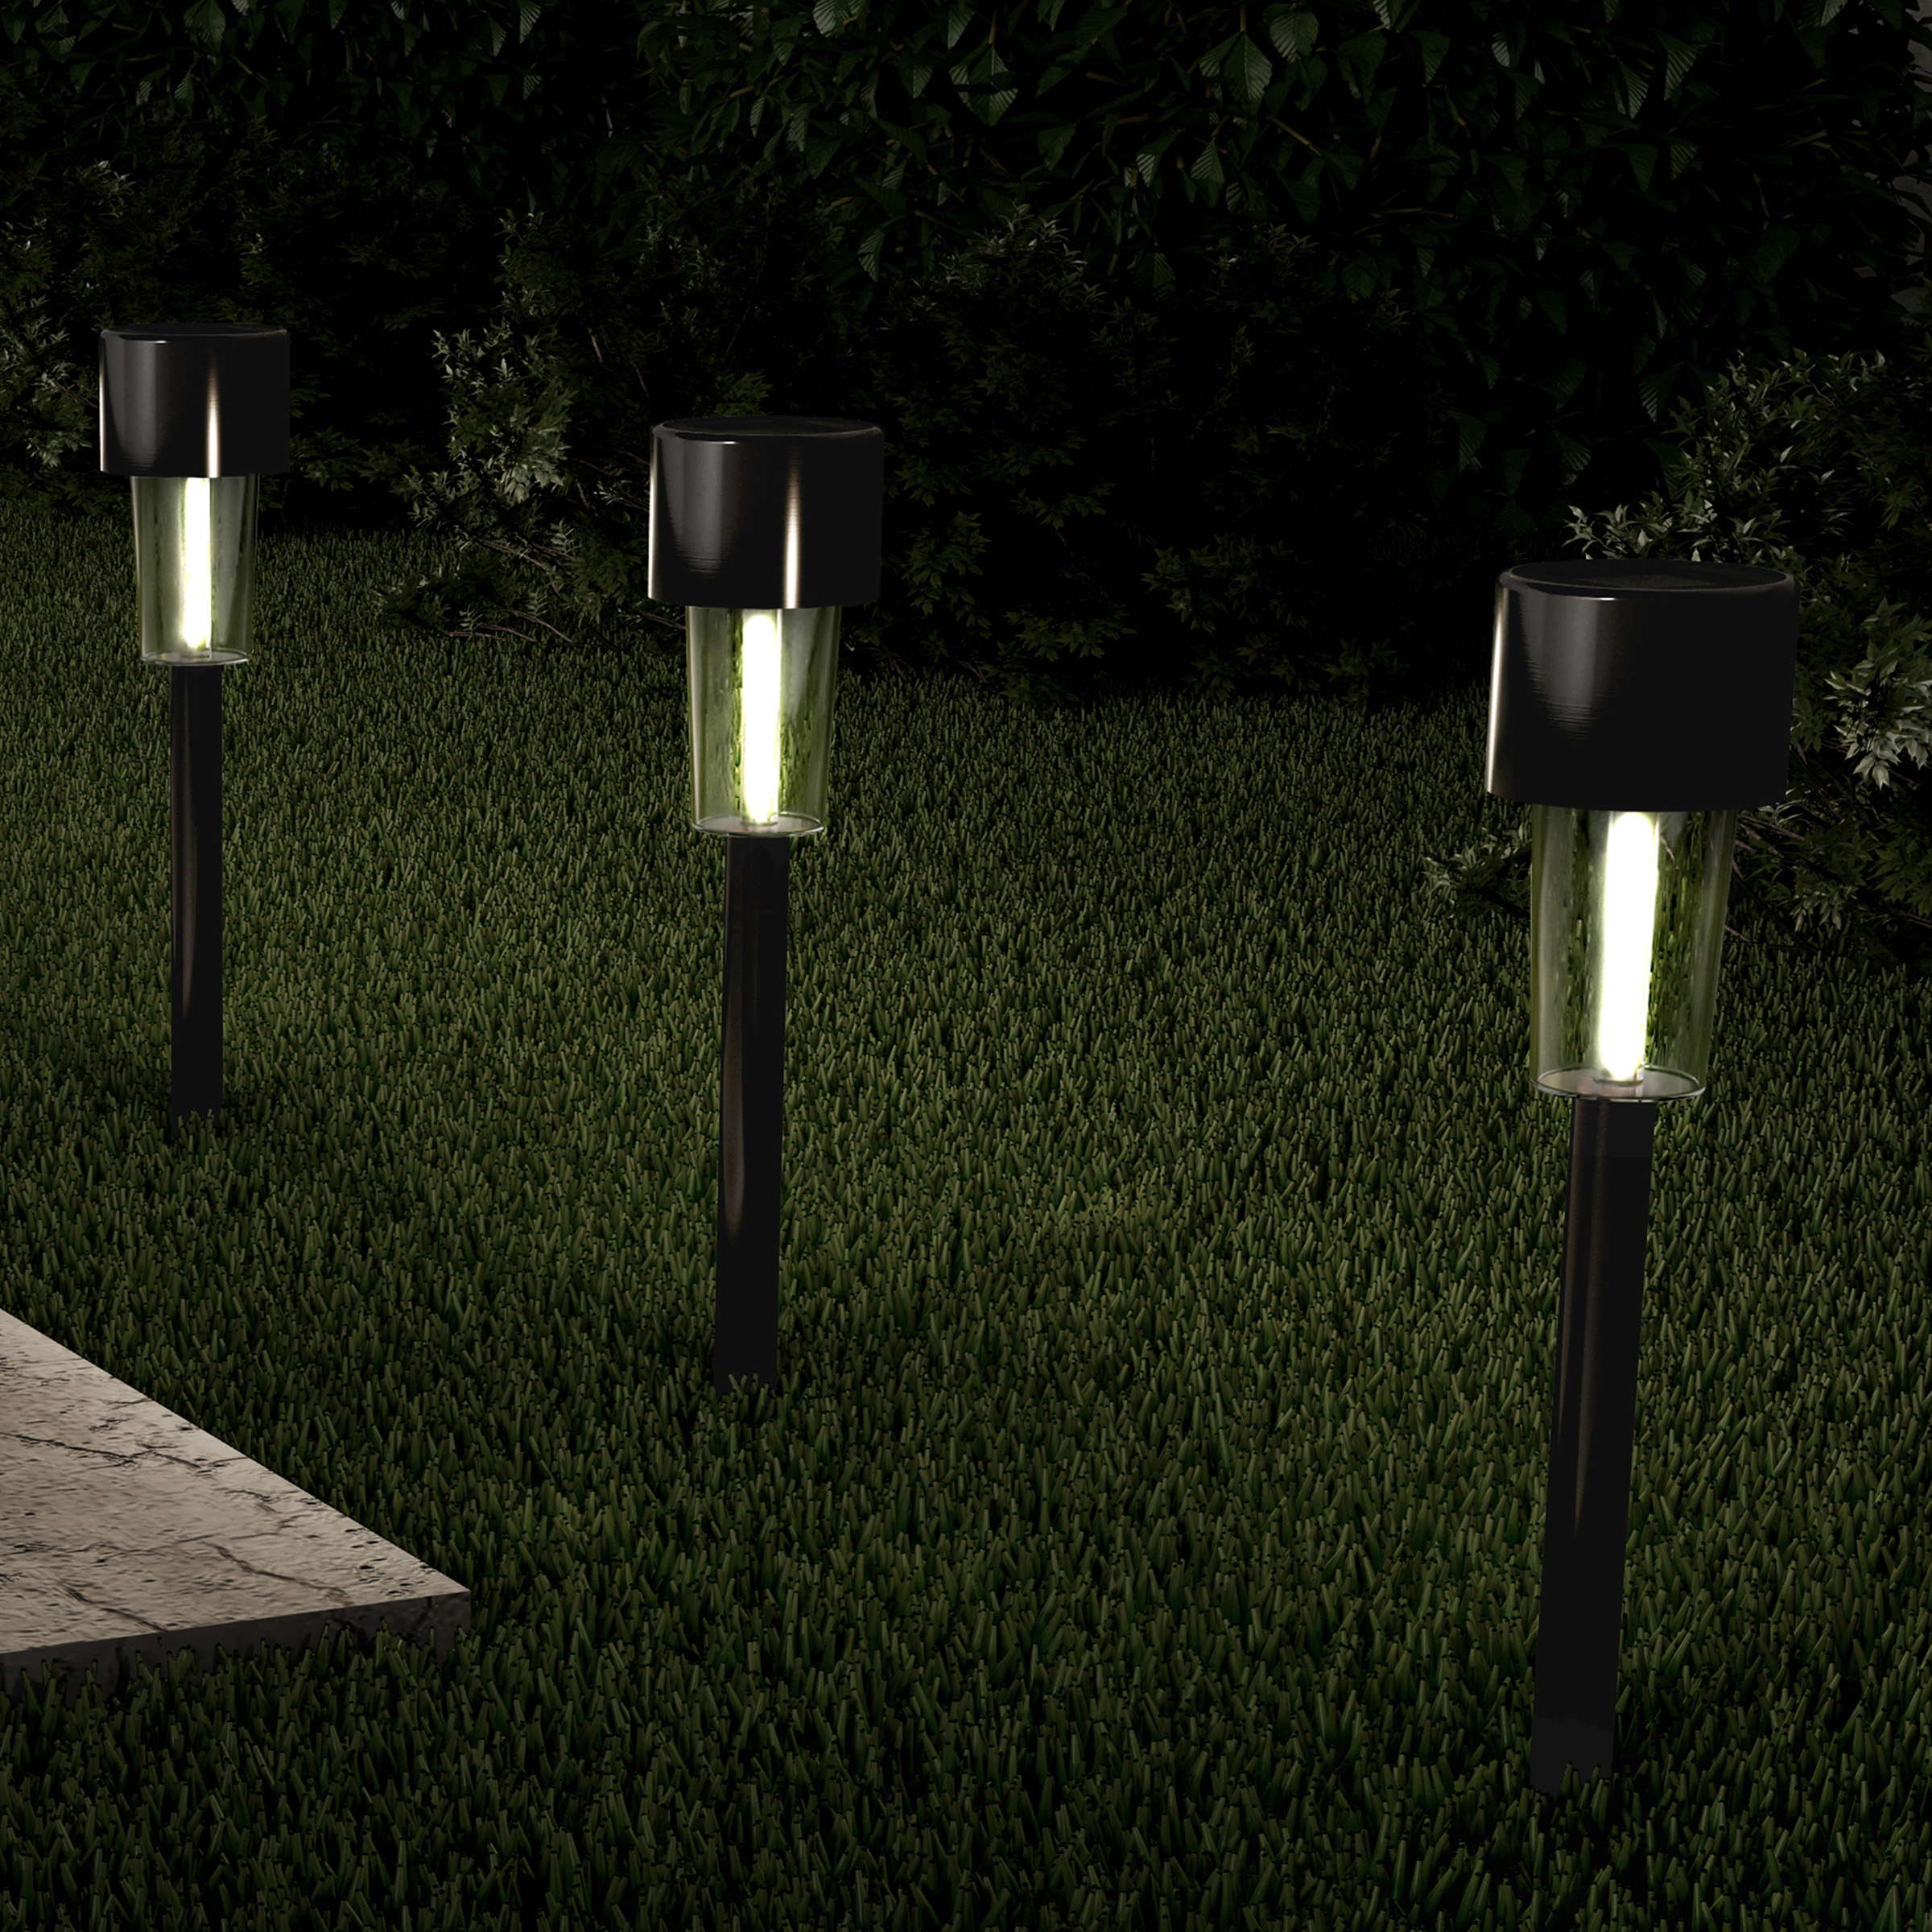 """Solar Path Lights- 12.2"""" Stainless Steel Outdoor Stake Lighting for Garden, Landscape, Patio, Driveway, Walkway- Set of 12 by Pure Garden (Black)"""